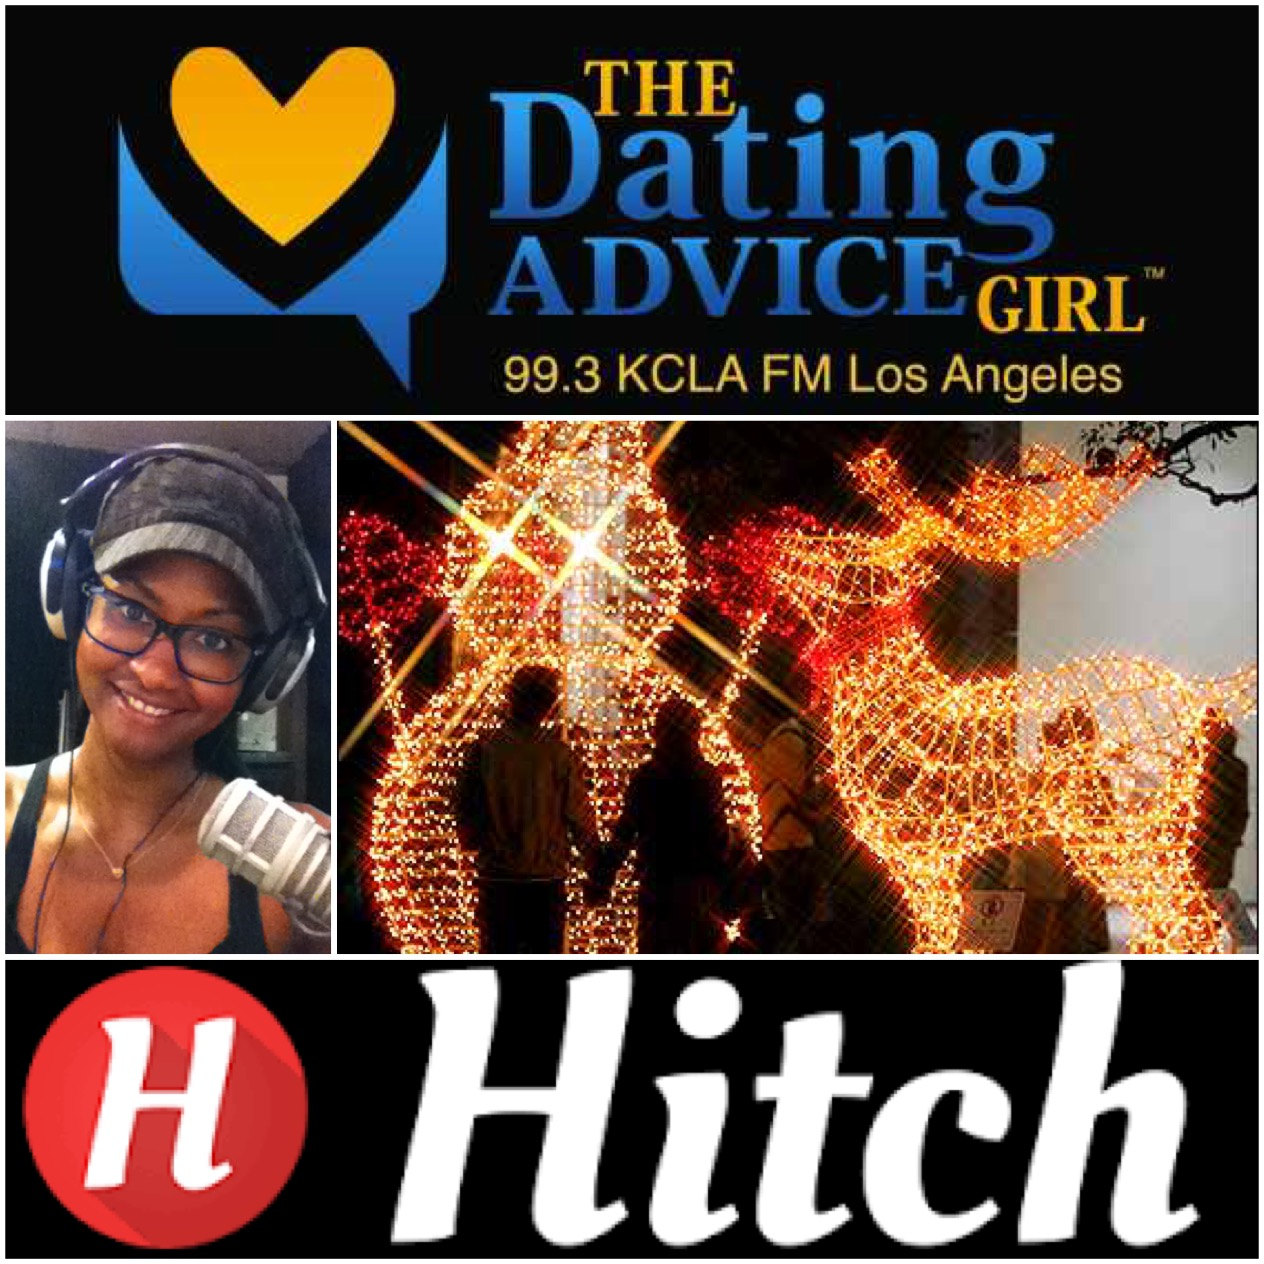 Hitch dating advice